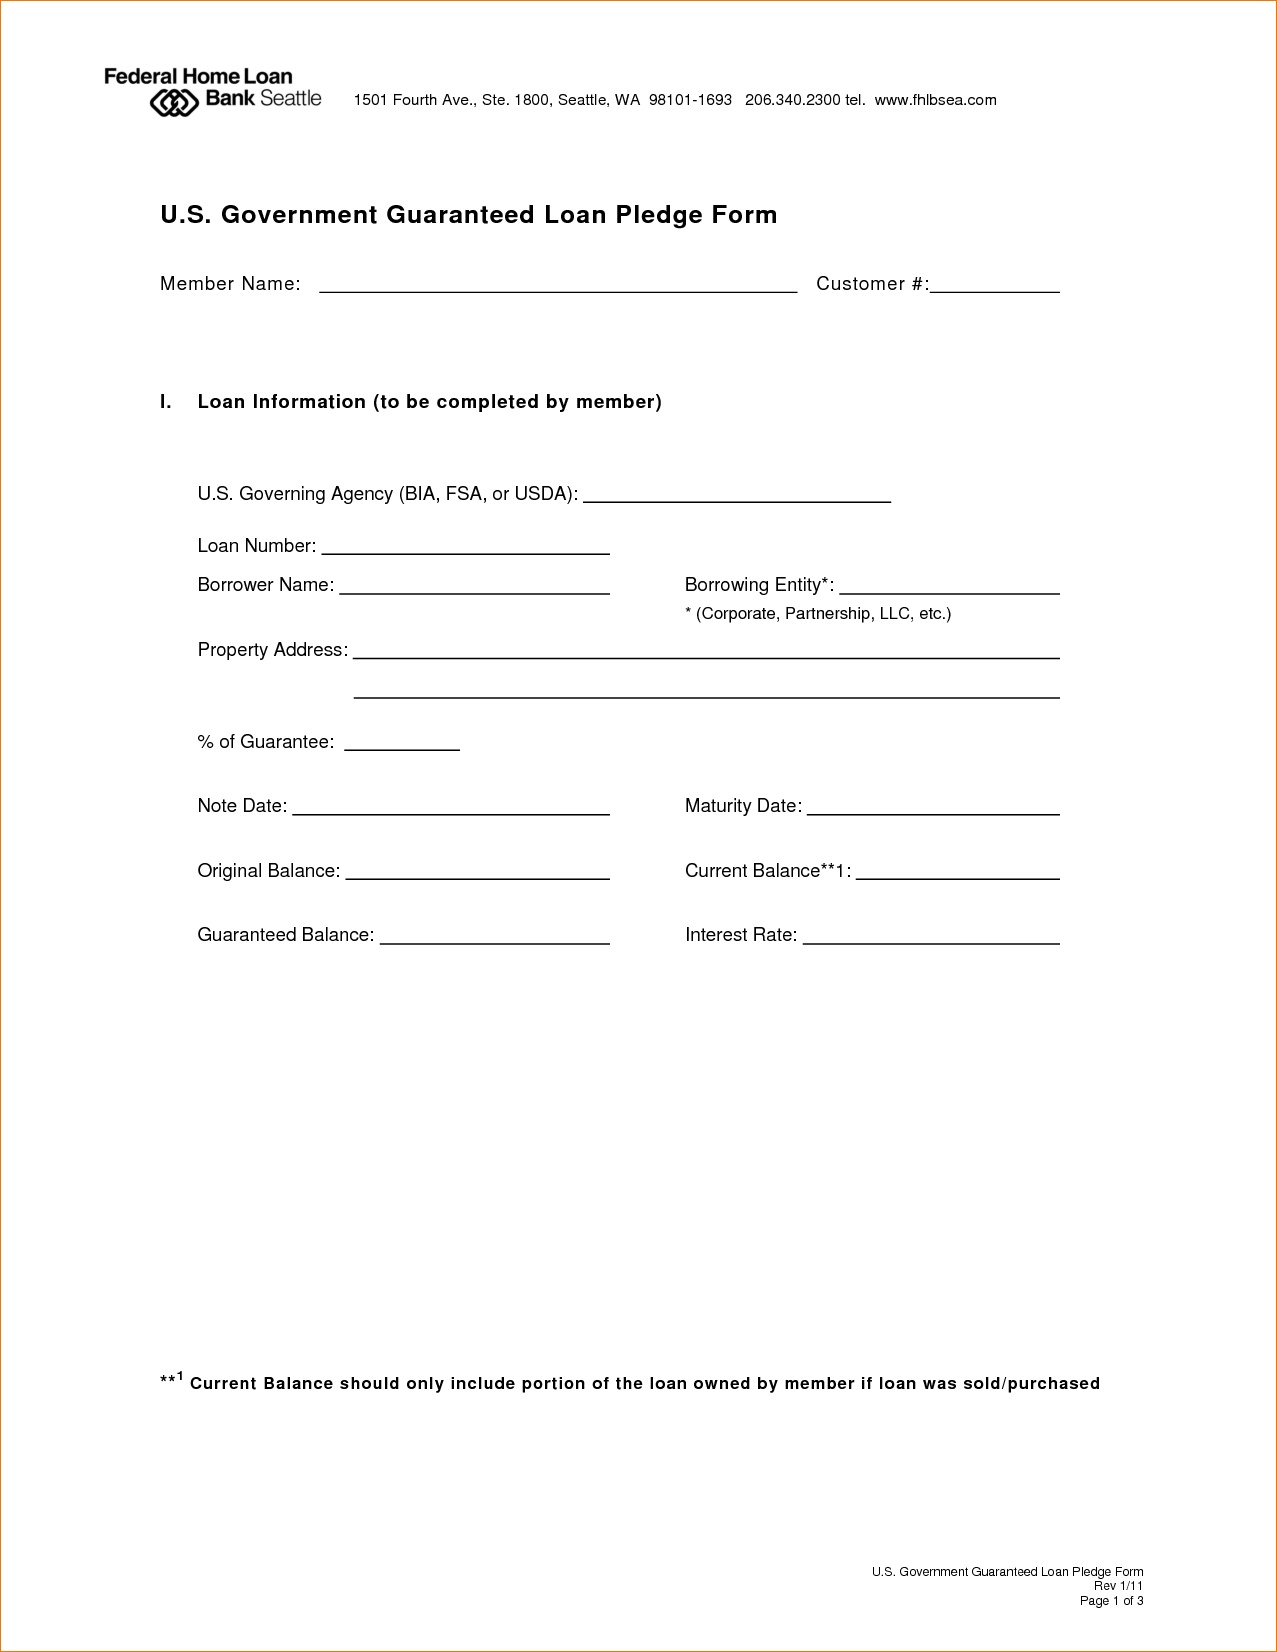 004 Personal Loan Form Template Ideas Agreement Best Application - Free Printable Personal Loan Forms